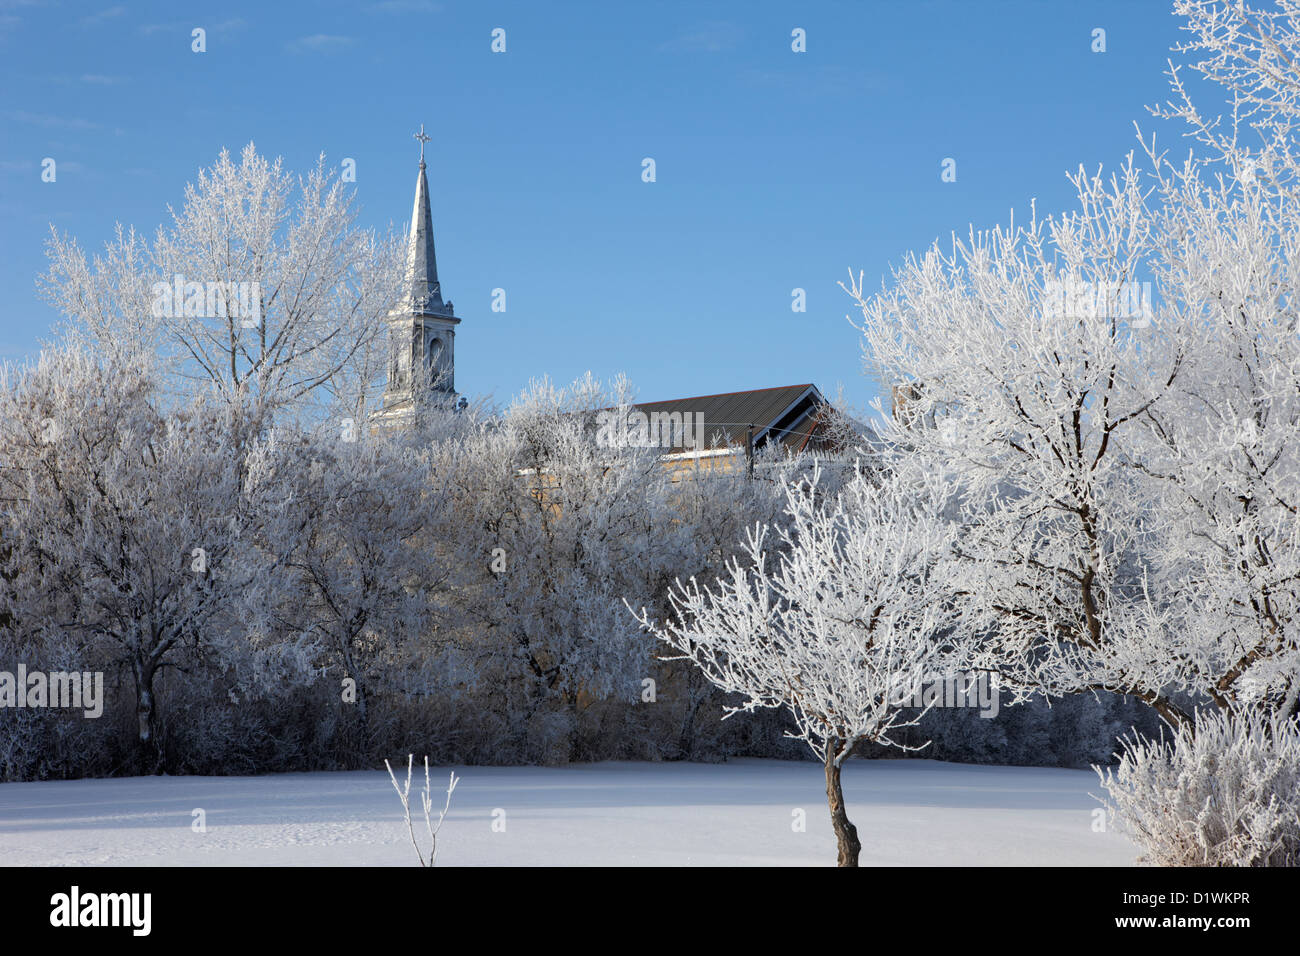 st josephs old church in Forget Saskatchewan Canada Stock Photo